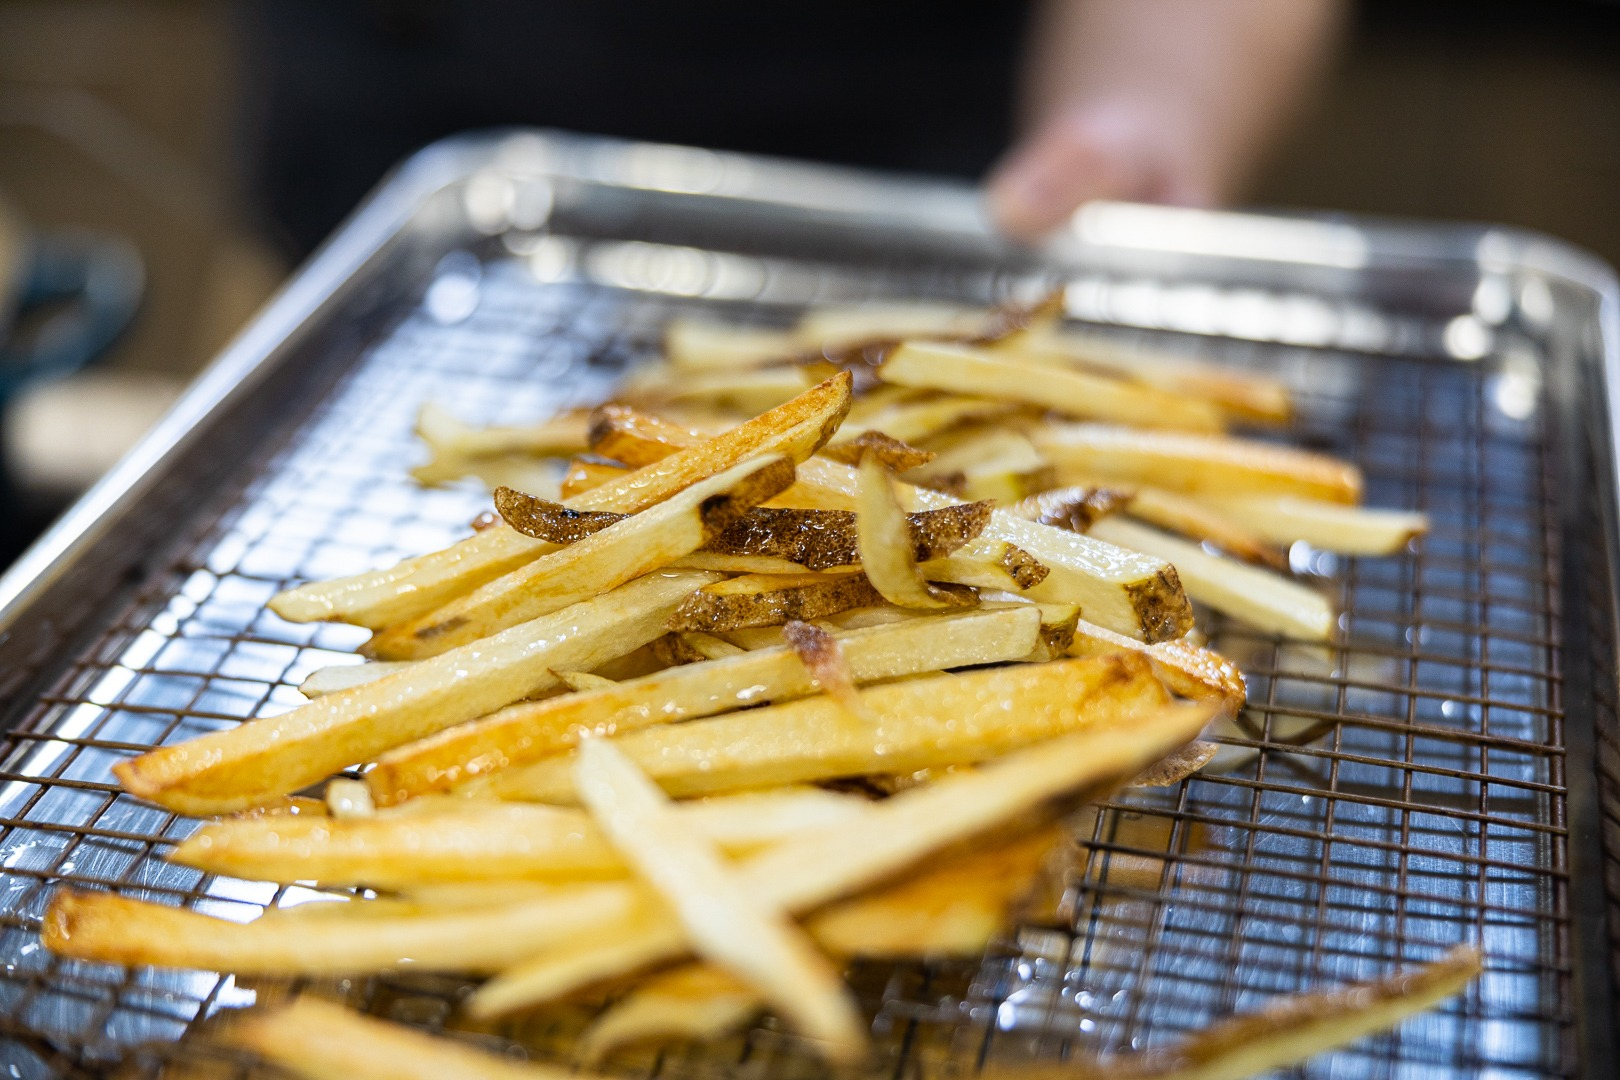 Fries after the first frying